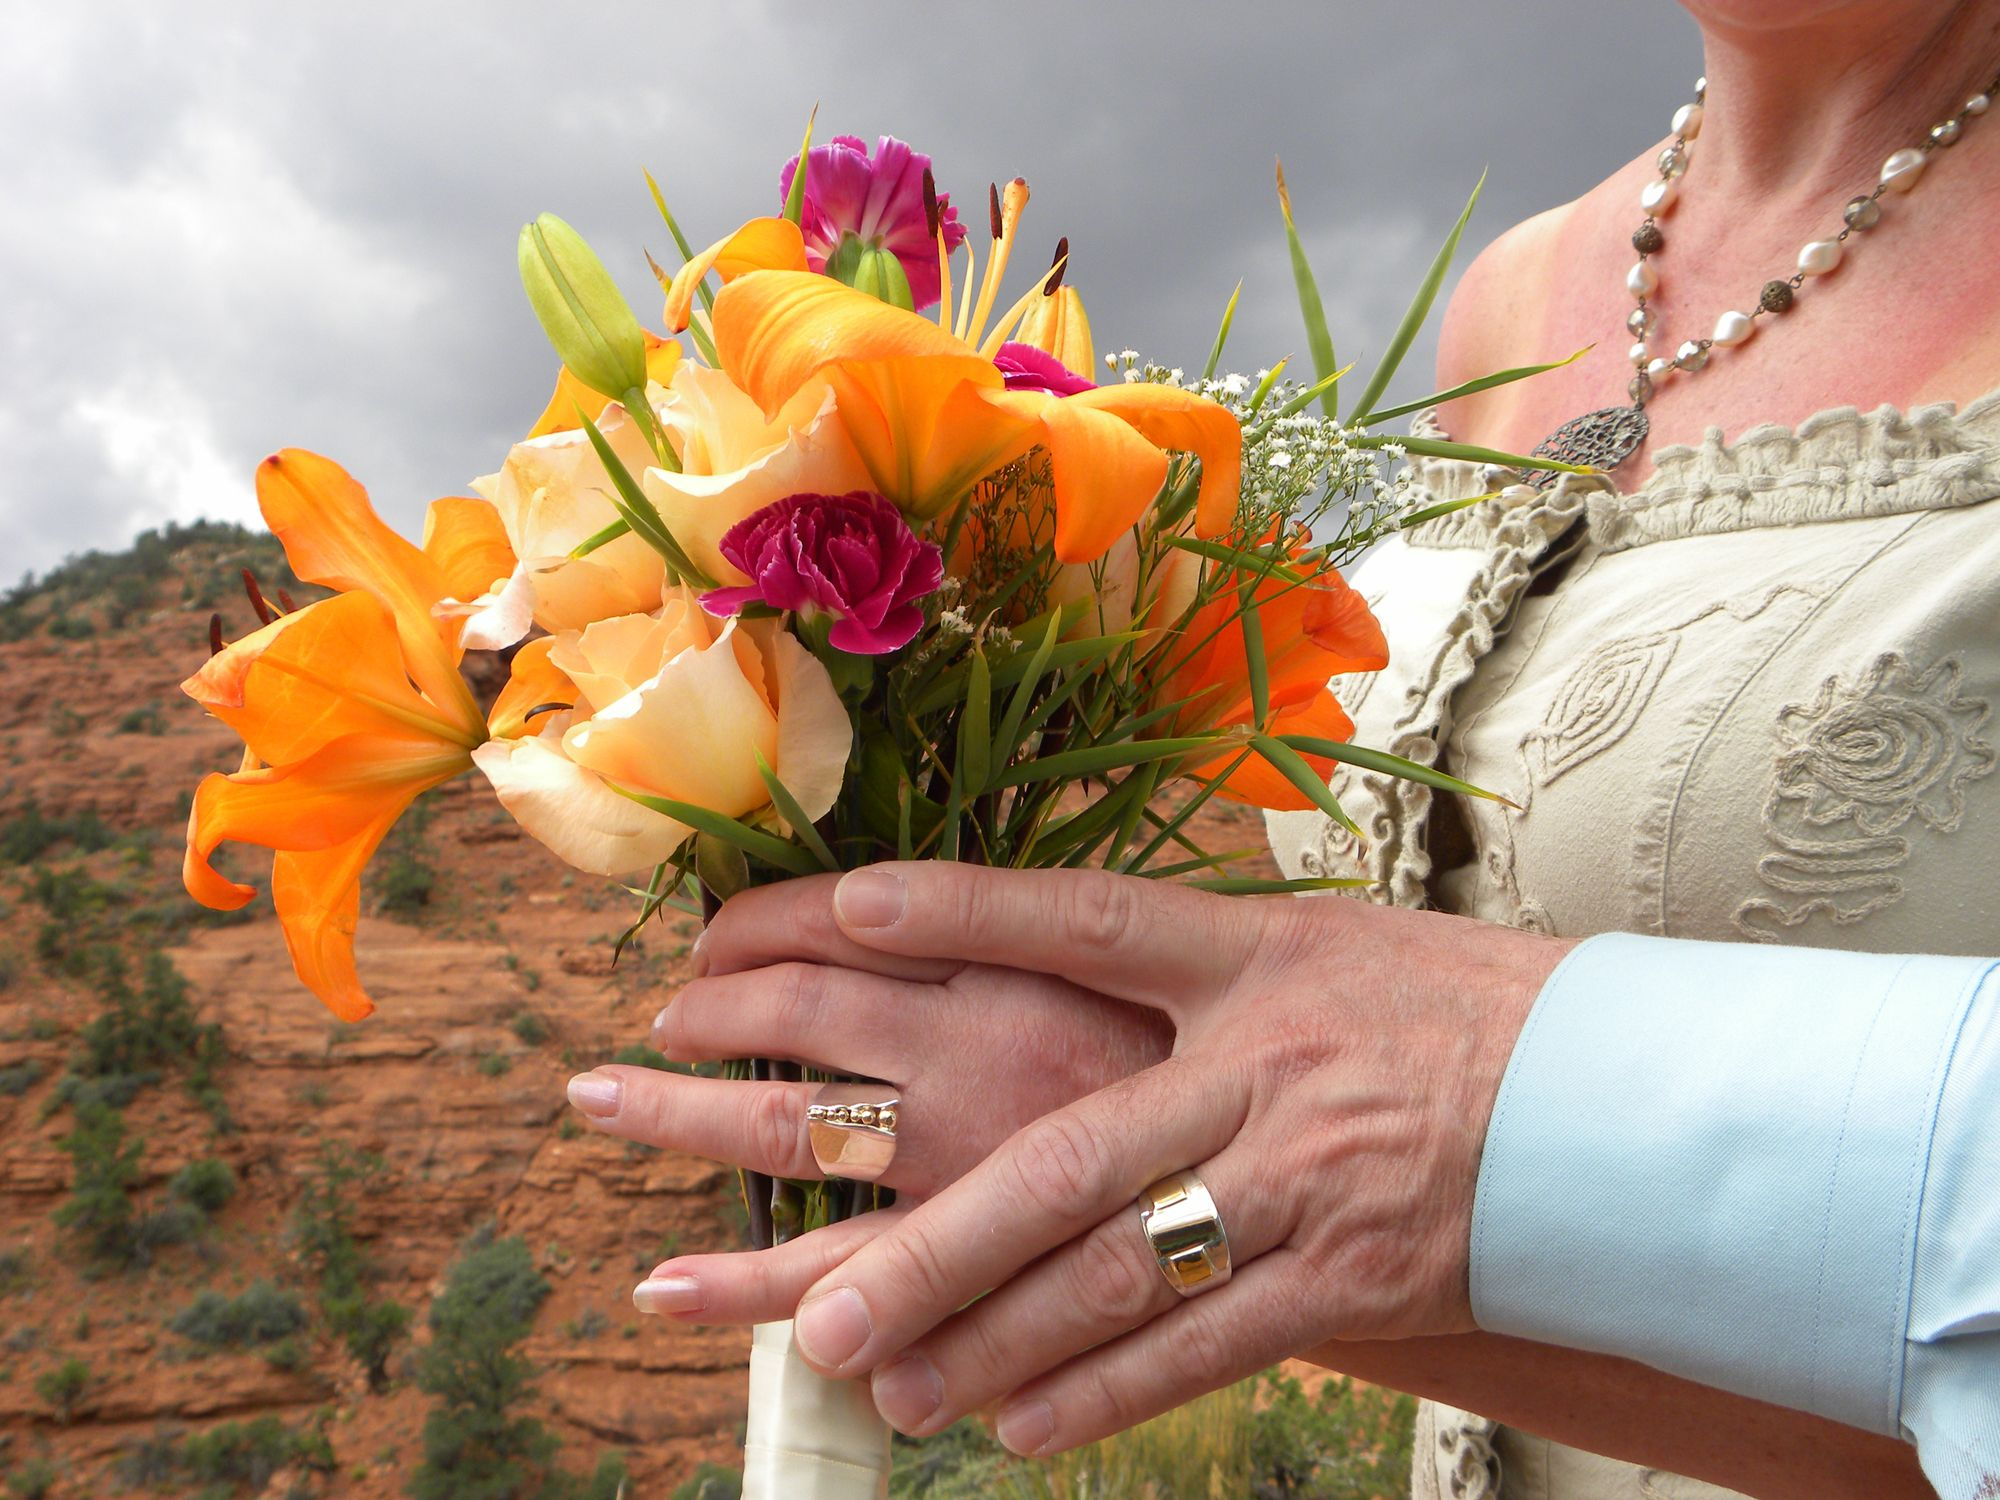 A women holds a bouquet of flowers at one of the popular Sedona weddings red rock locations.....  Give us chance to make your marriage ceremony memorable. #sedonadestinationweddings